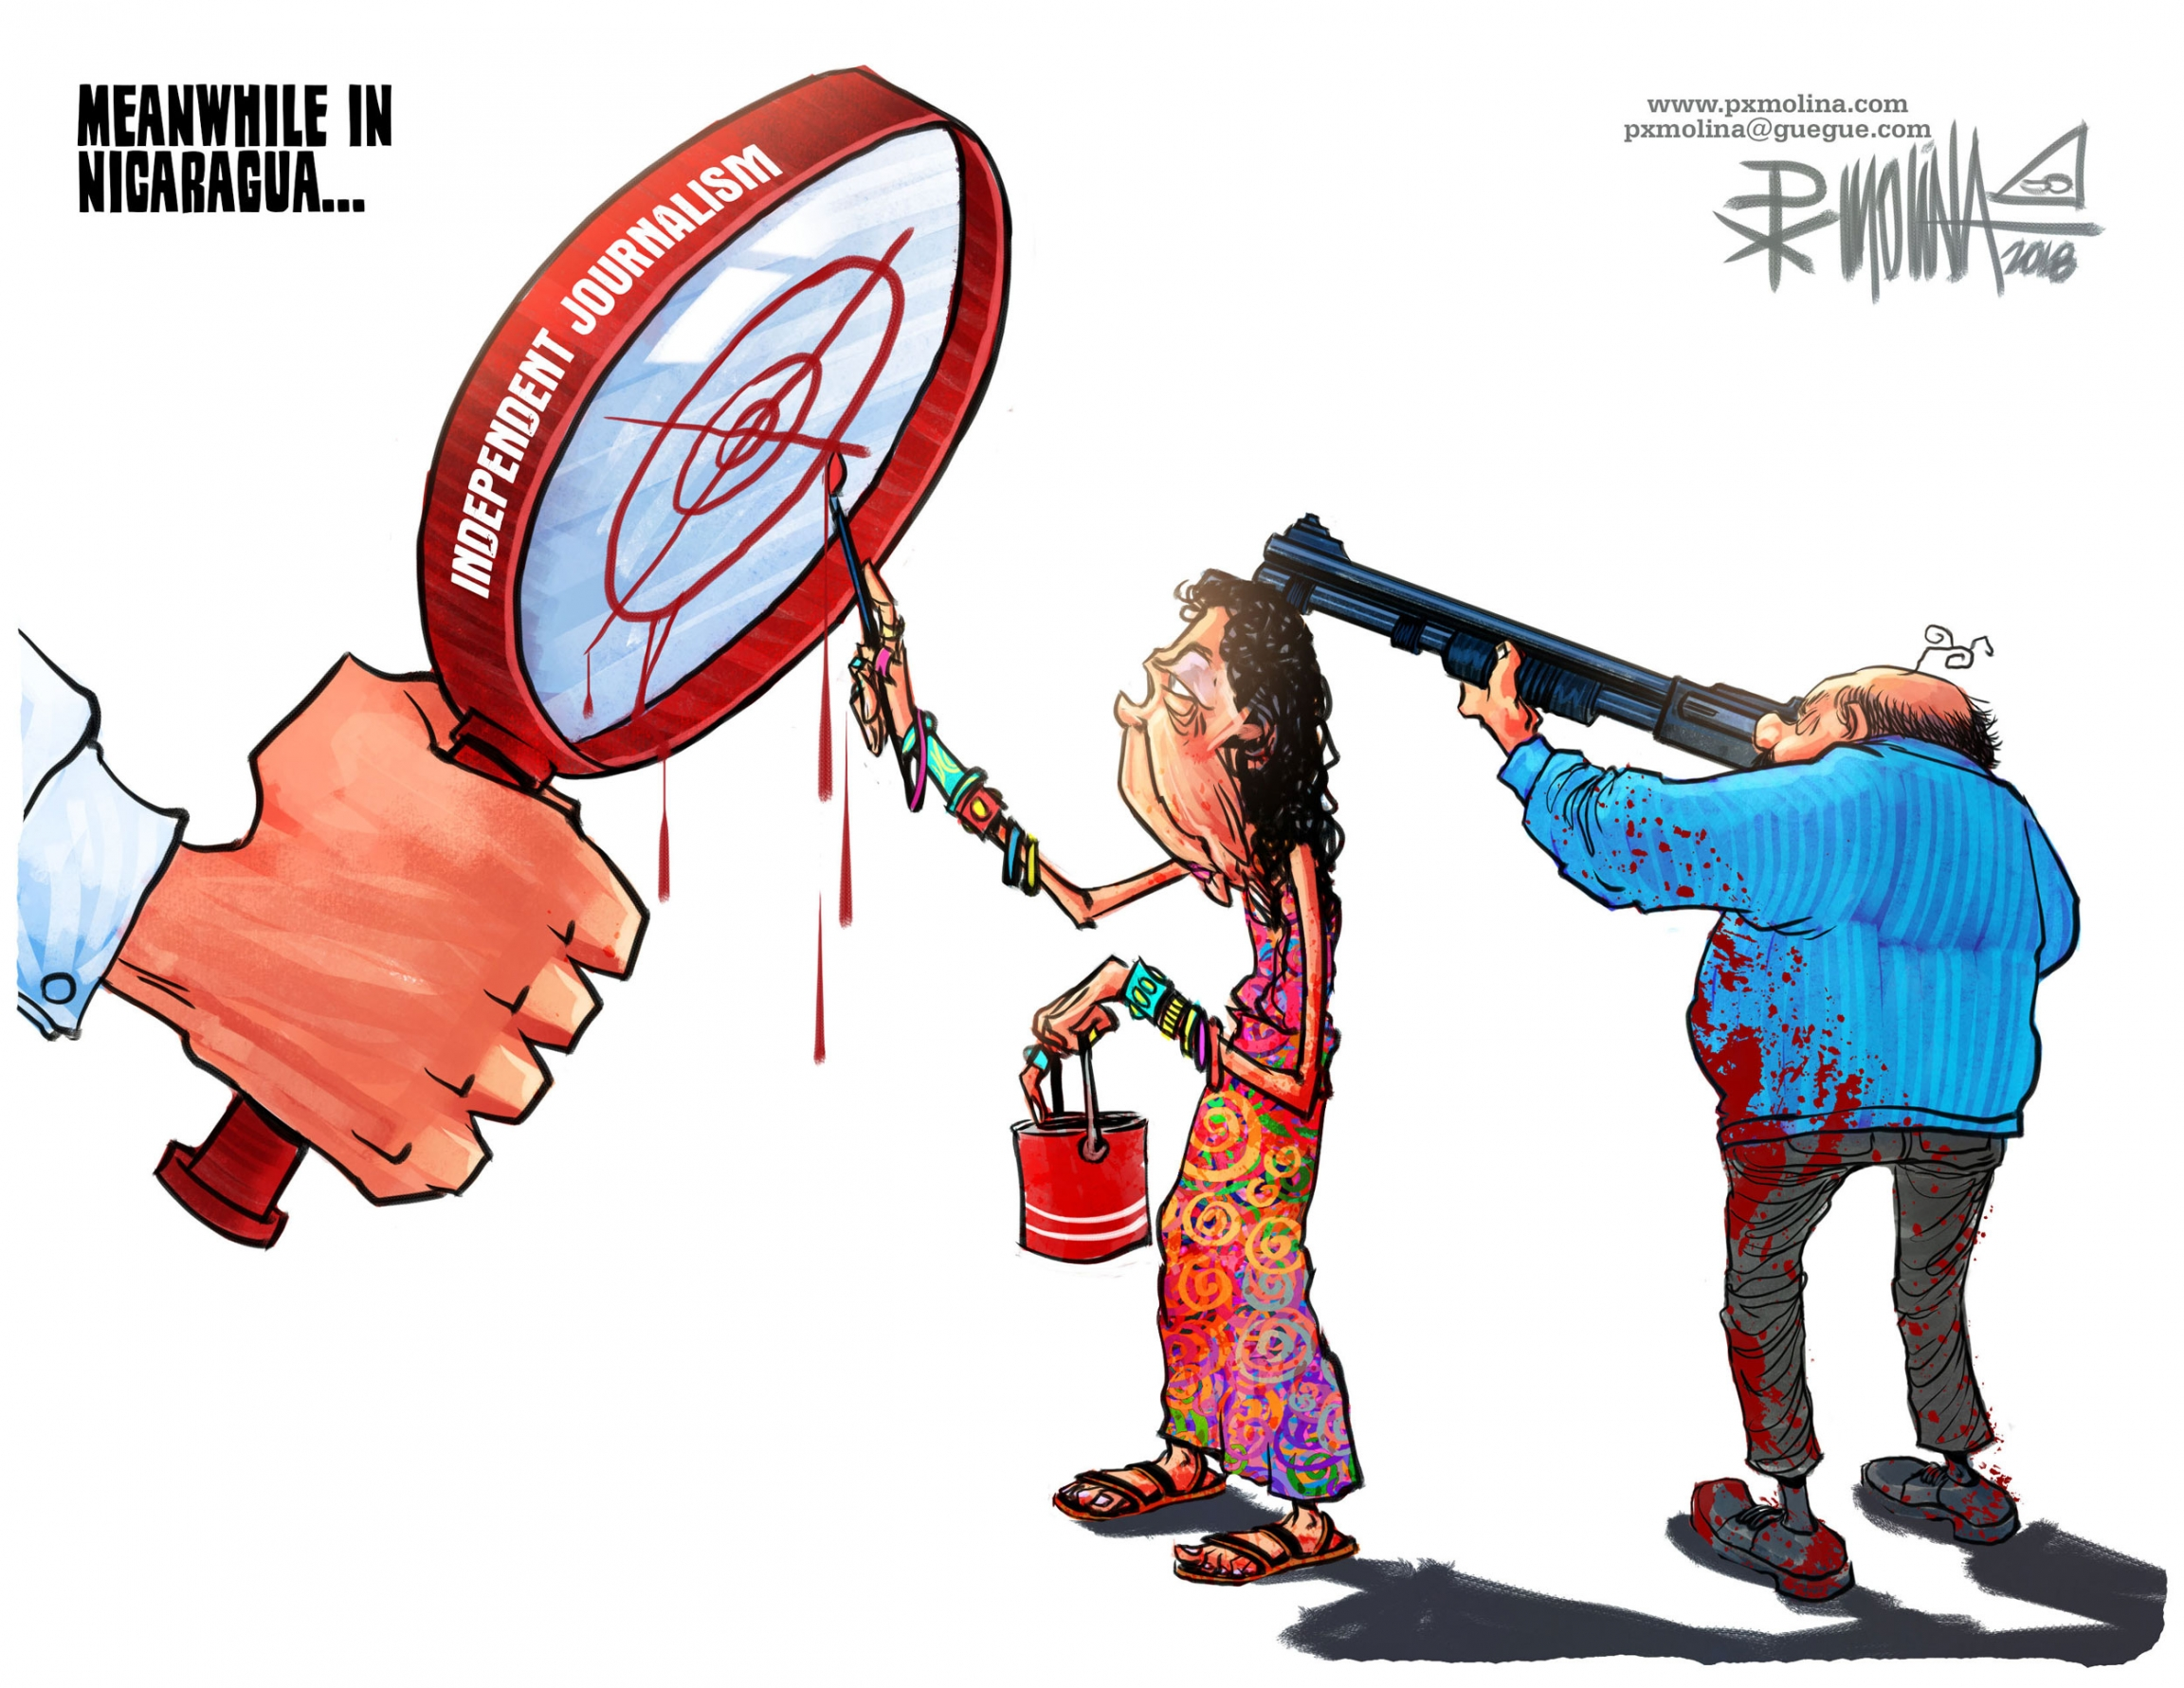 A cartoon showing a man with a rifle pointed at a magnify glass and a woman painting a red target on the glass.